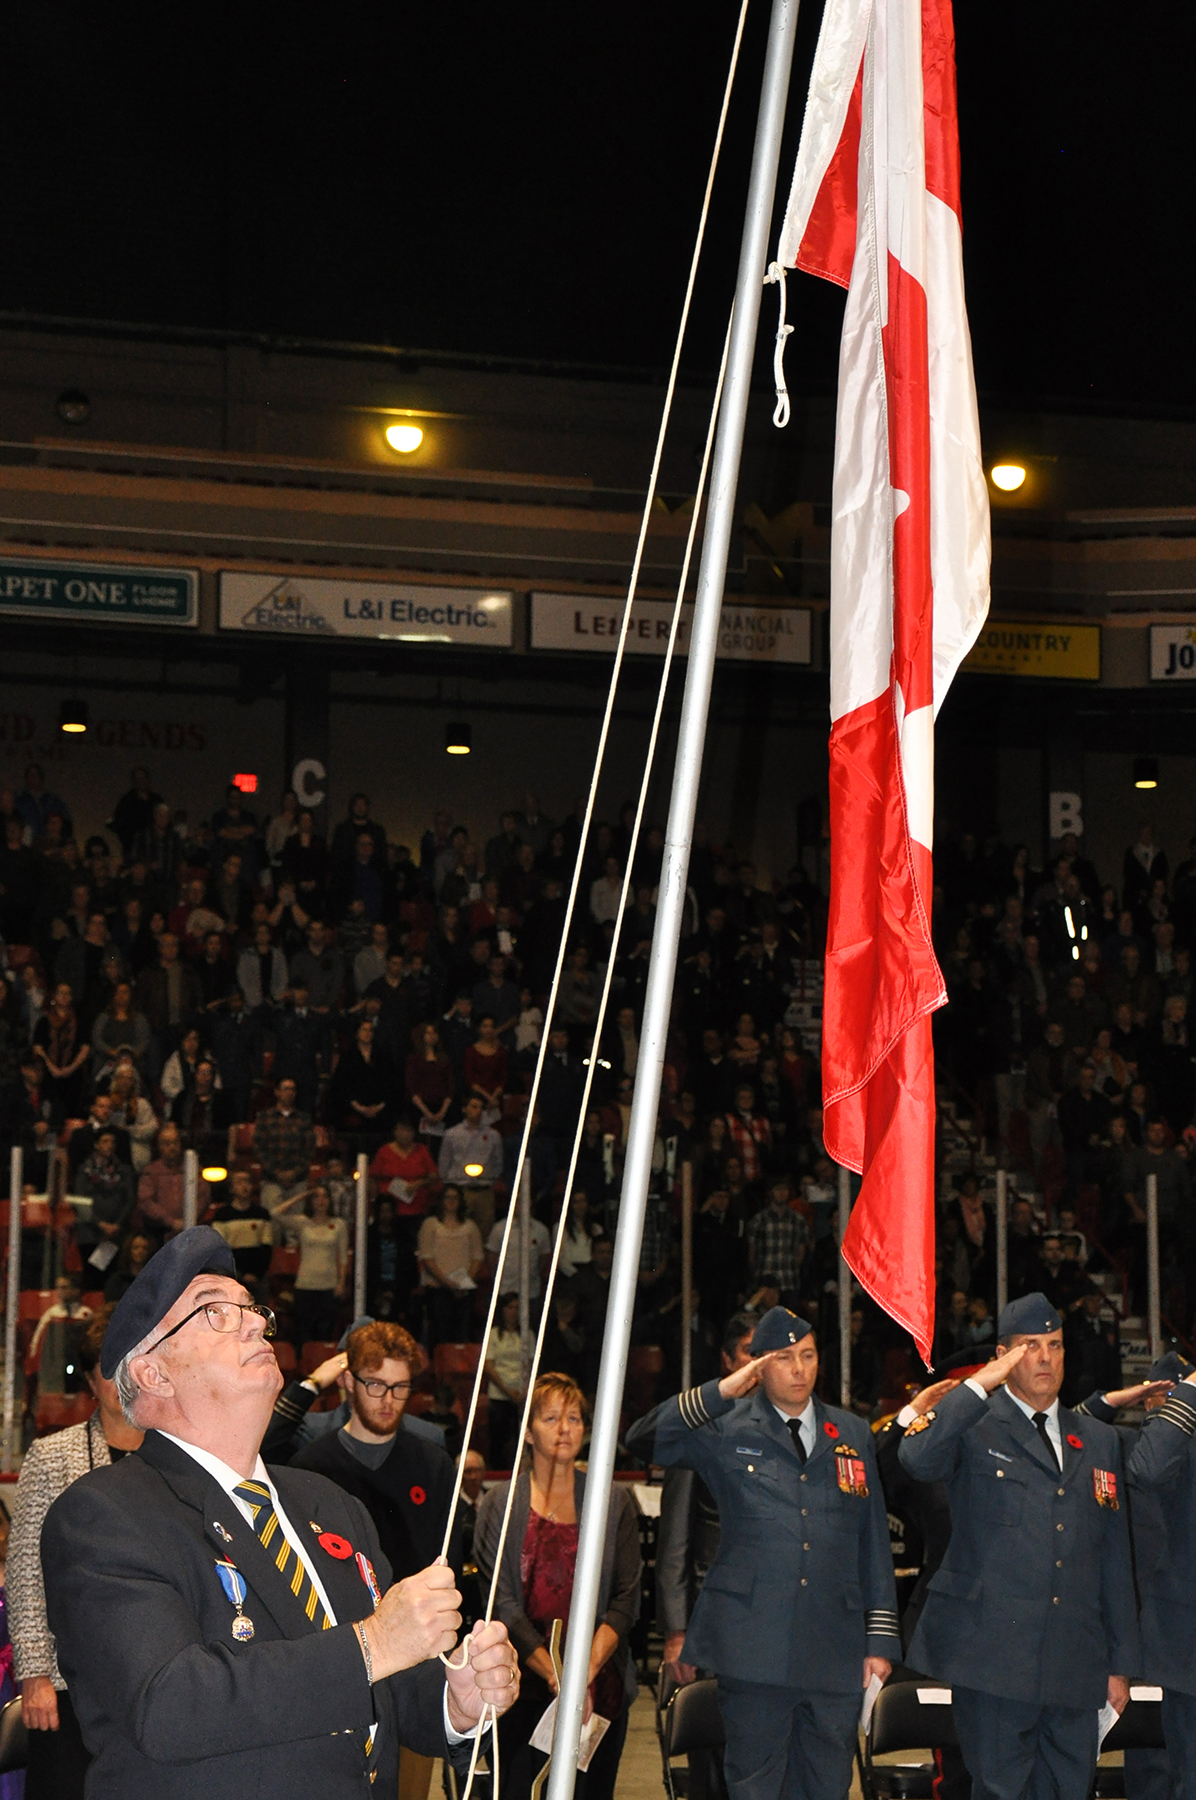 Canadian veteran Bob O'Riley raises the flag and Royal Canadian Air Force members salute following the sounding of Reveille during the 15 Wing Remembrance Day ceremony on November 11, 2015, at Moose Jaw, Saskatchewan's Mosaic Place. PHOTO: Lieutenant Jenn Halliwell